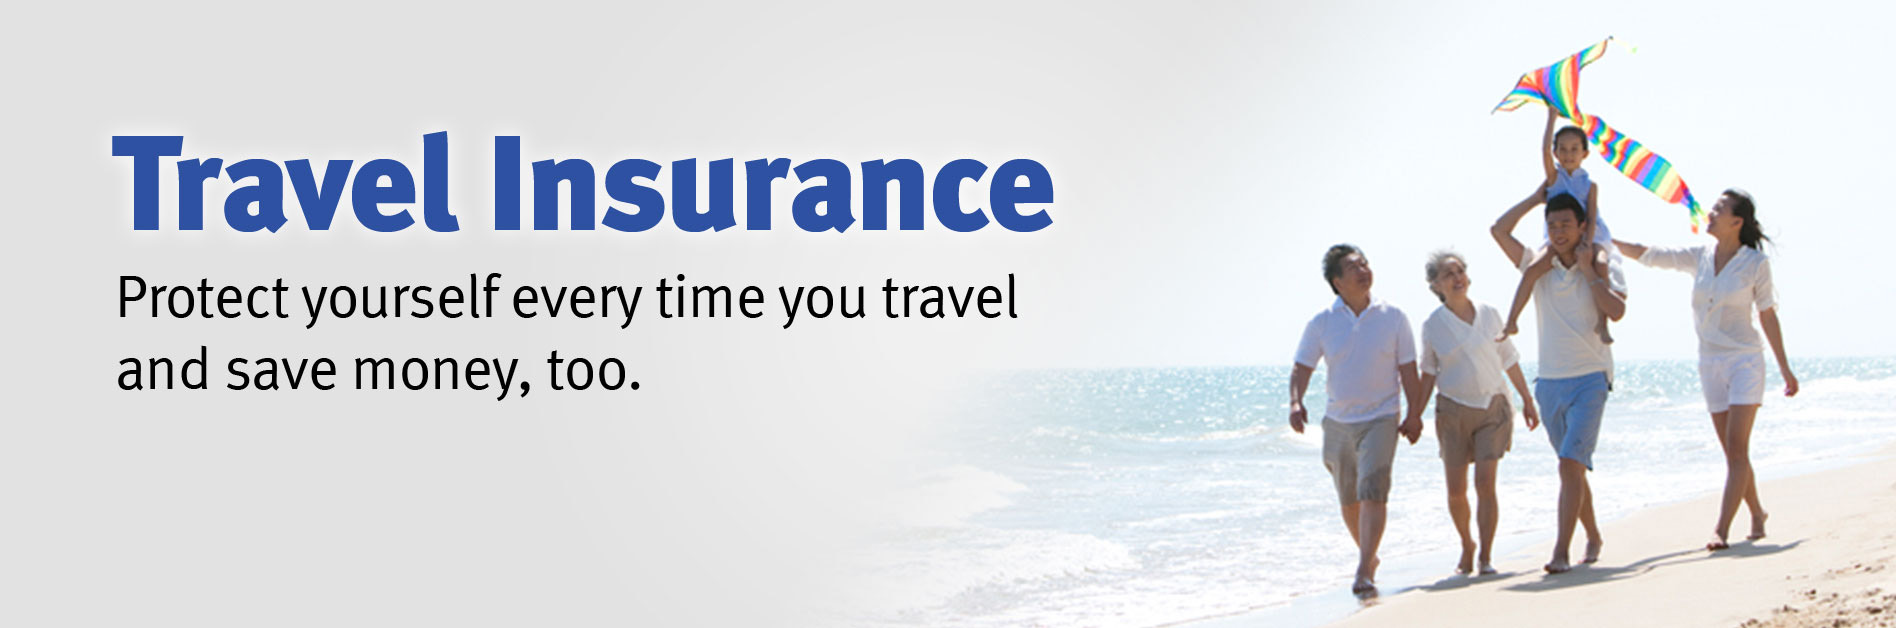 Travel Insurance Quotes Td Travel Insurance Quote  44Billionlater